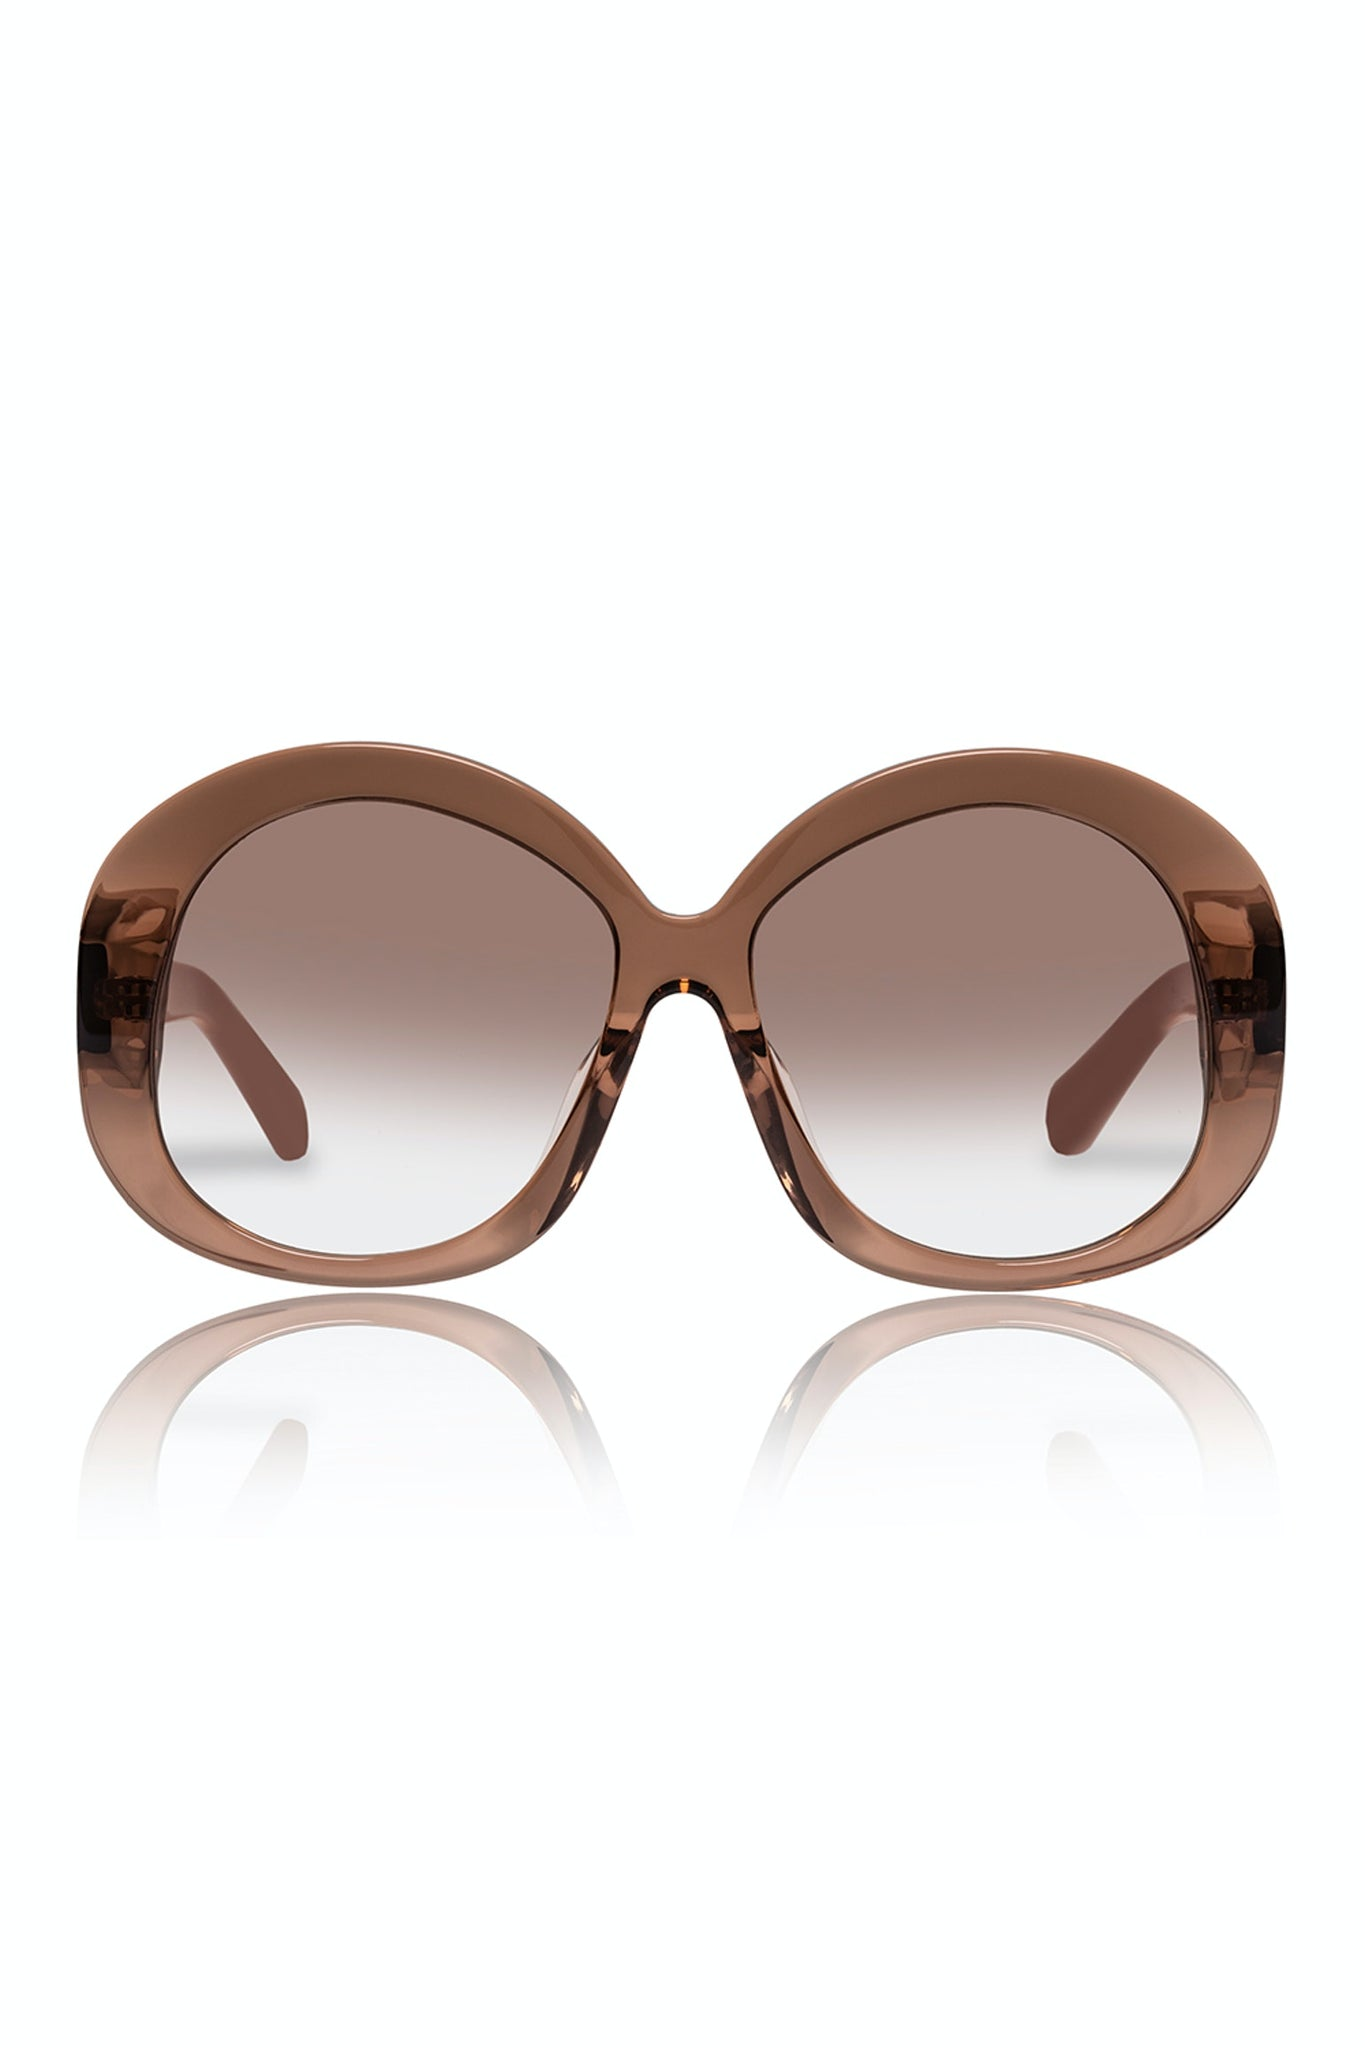 Karen Walker Supersonic Tan Putty/Tan Gradient